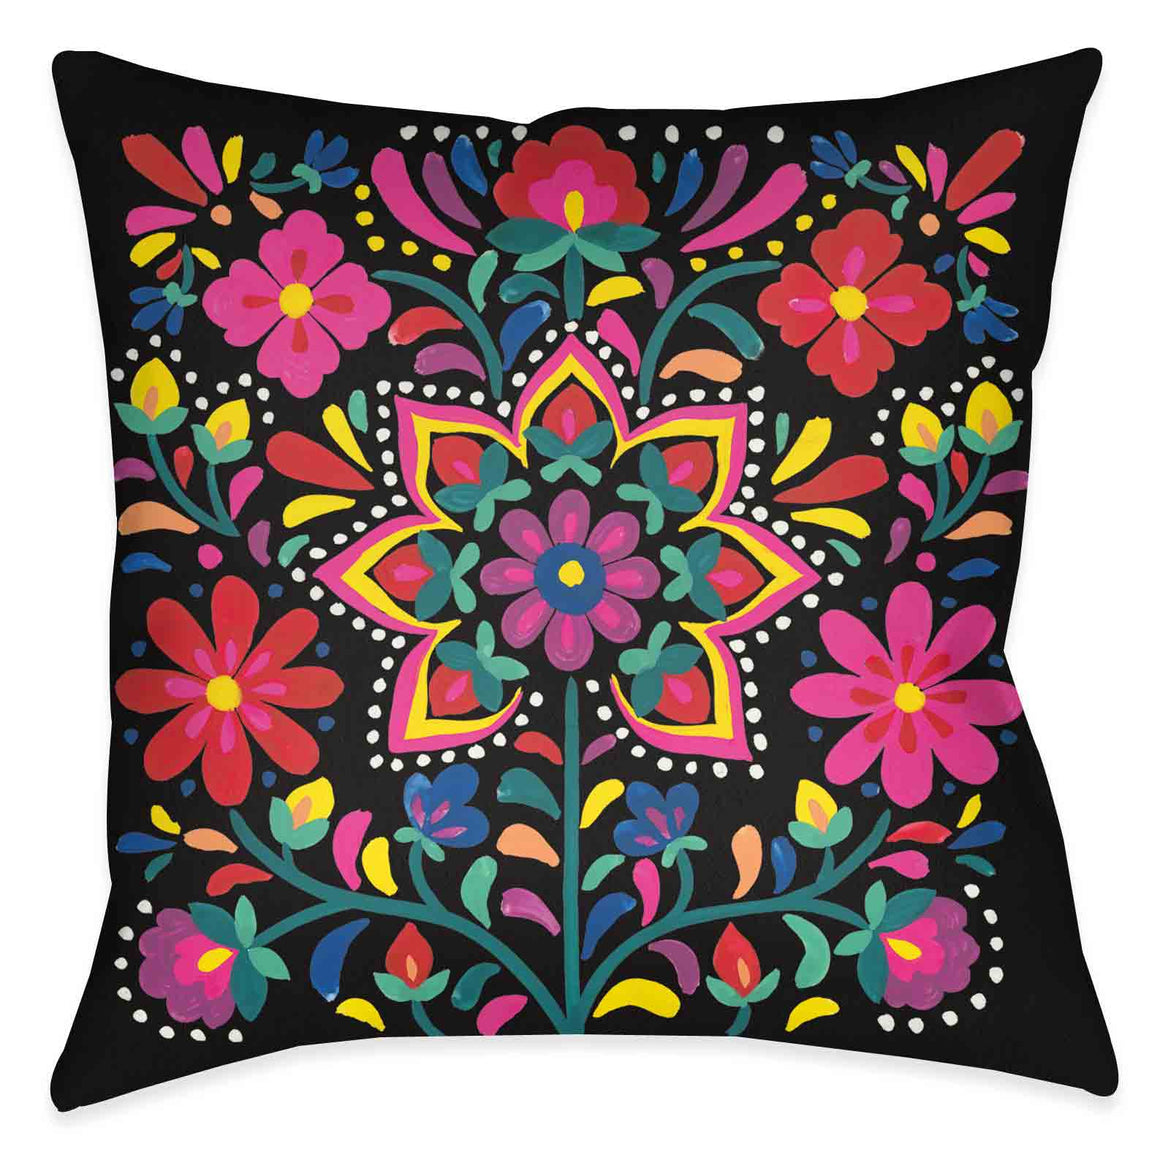 Folk Art Floral III Outdoor Decorative Pillow